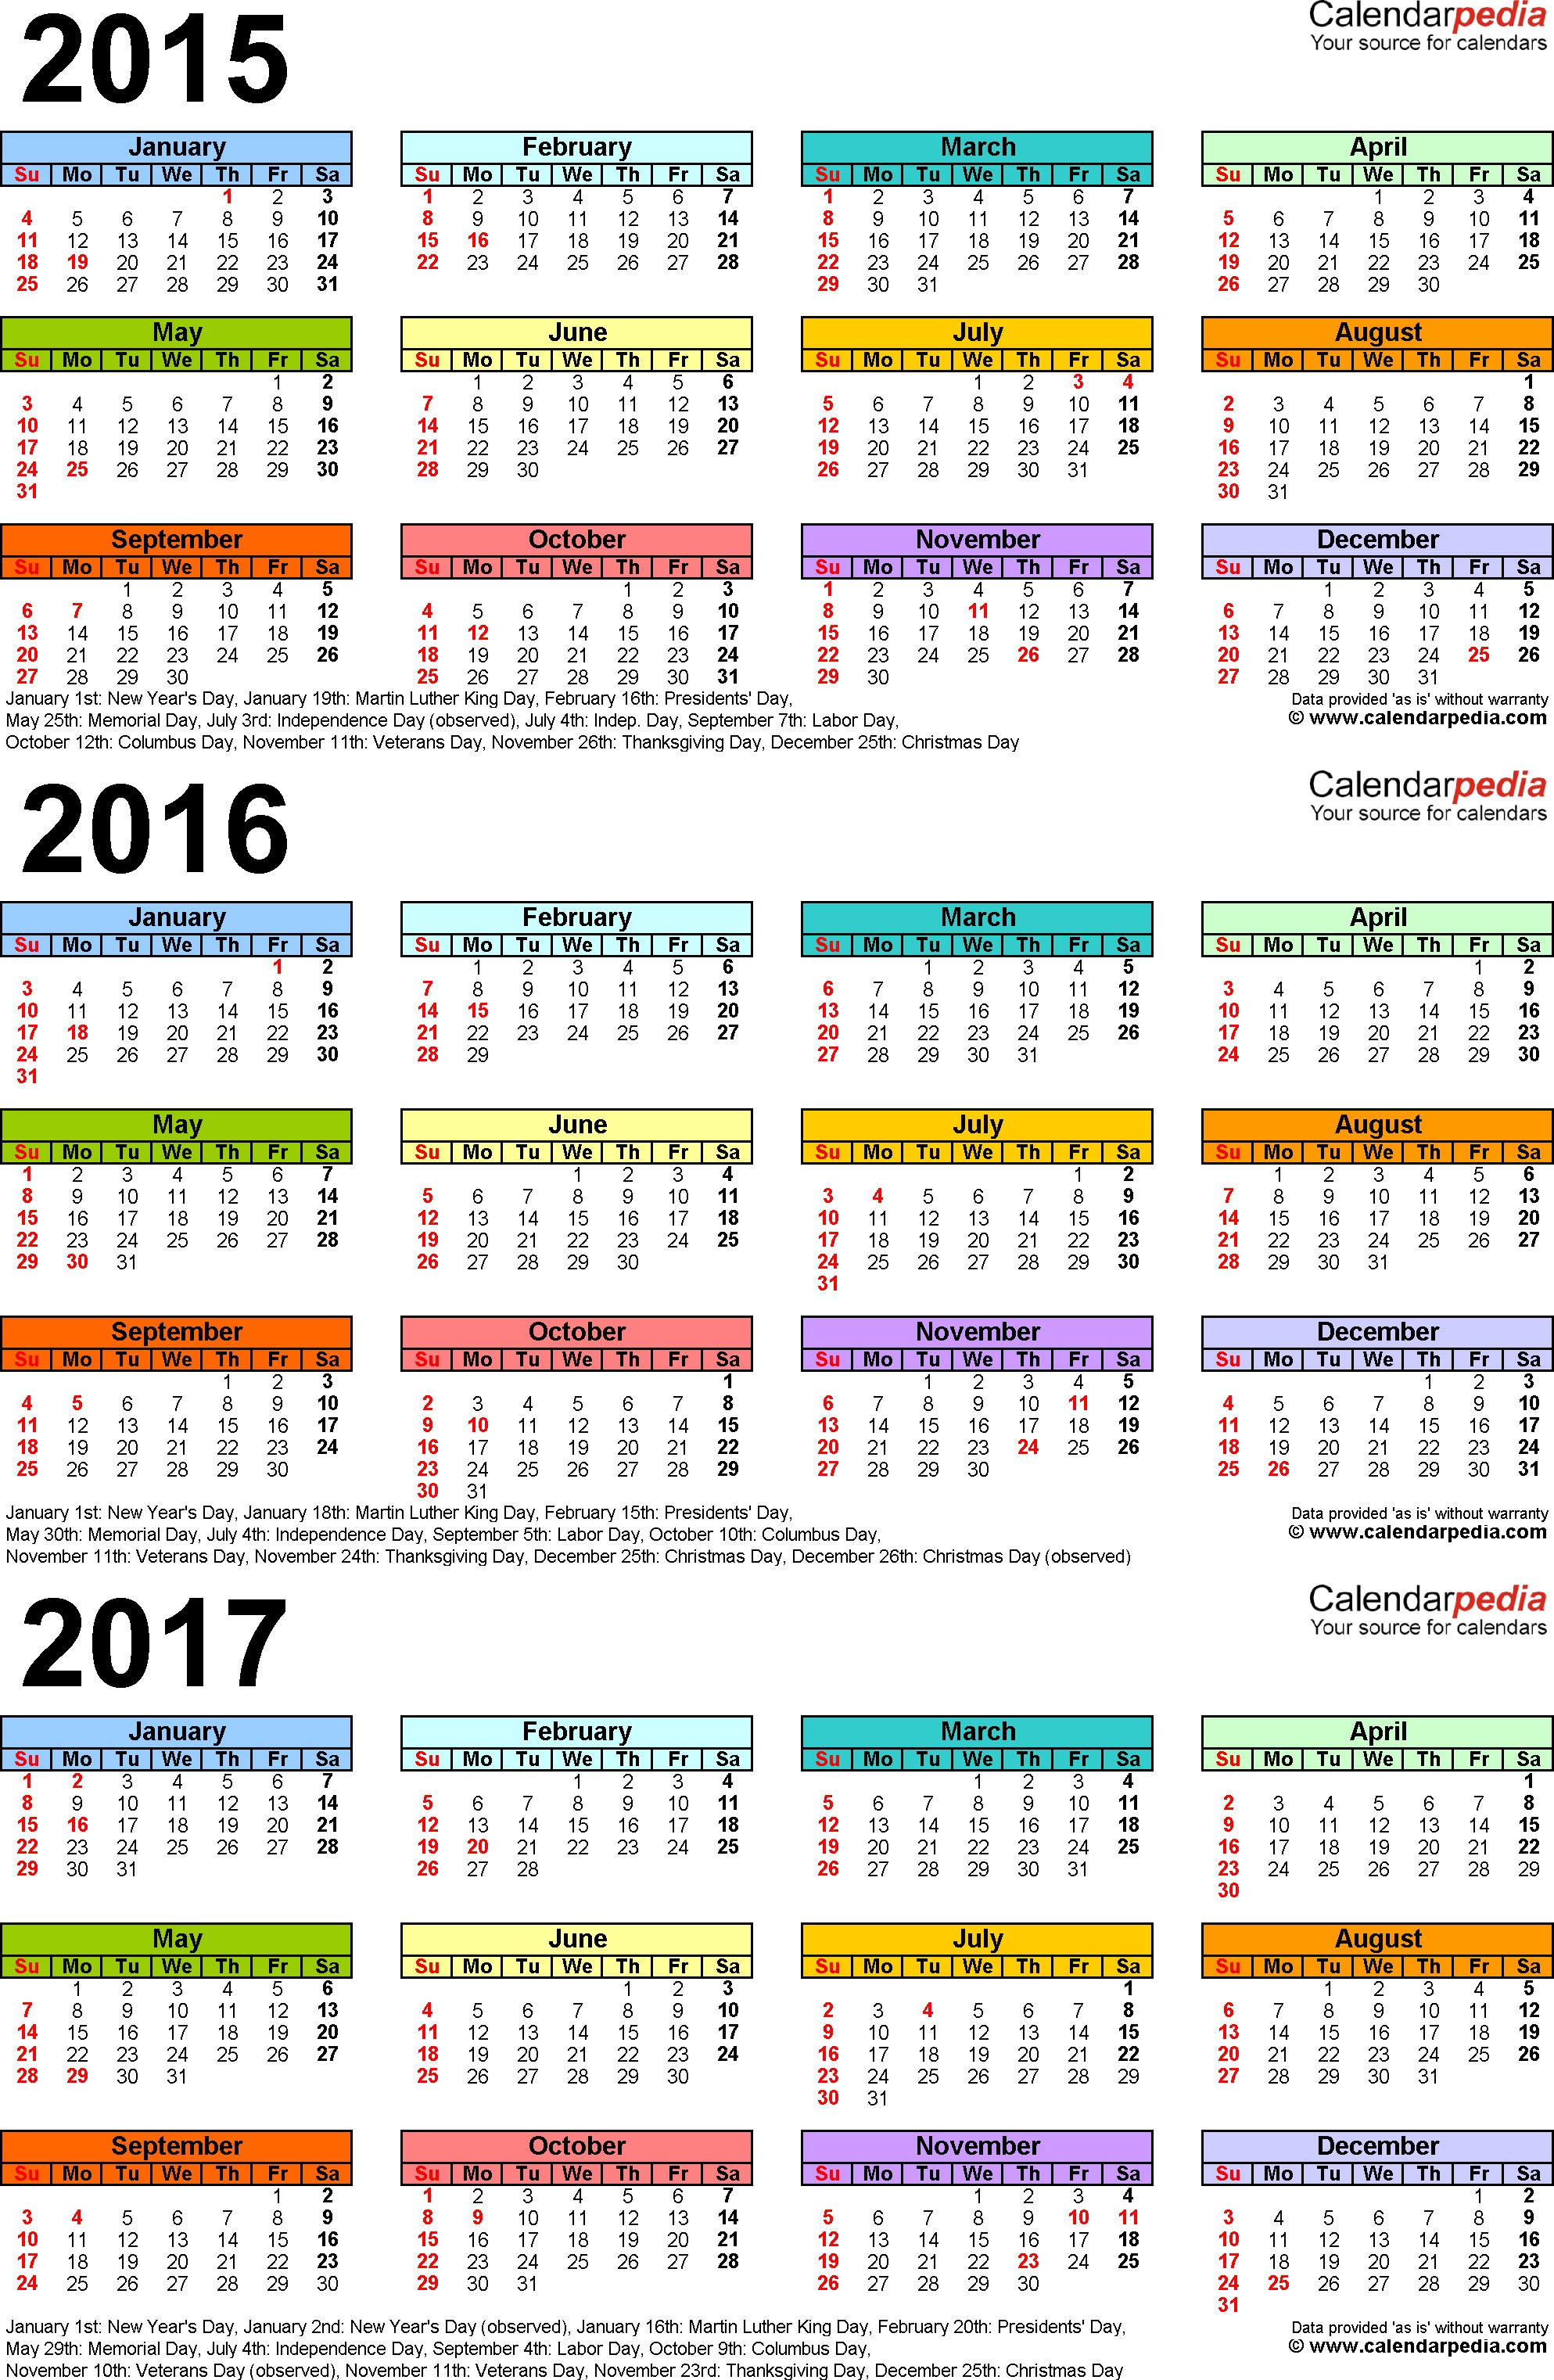 March Calendar Blank 2019 Mejores Y Más Novedosos 2015 2016 2017 Calendar 4 Three Year Printable Pdf Calendars Of March Calendar Blank 2019 Más Recientemente Liberado Art Prints Lunar Calendar 2019